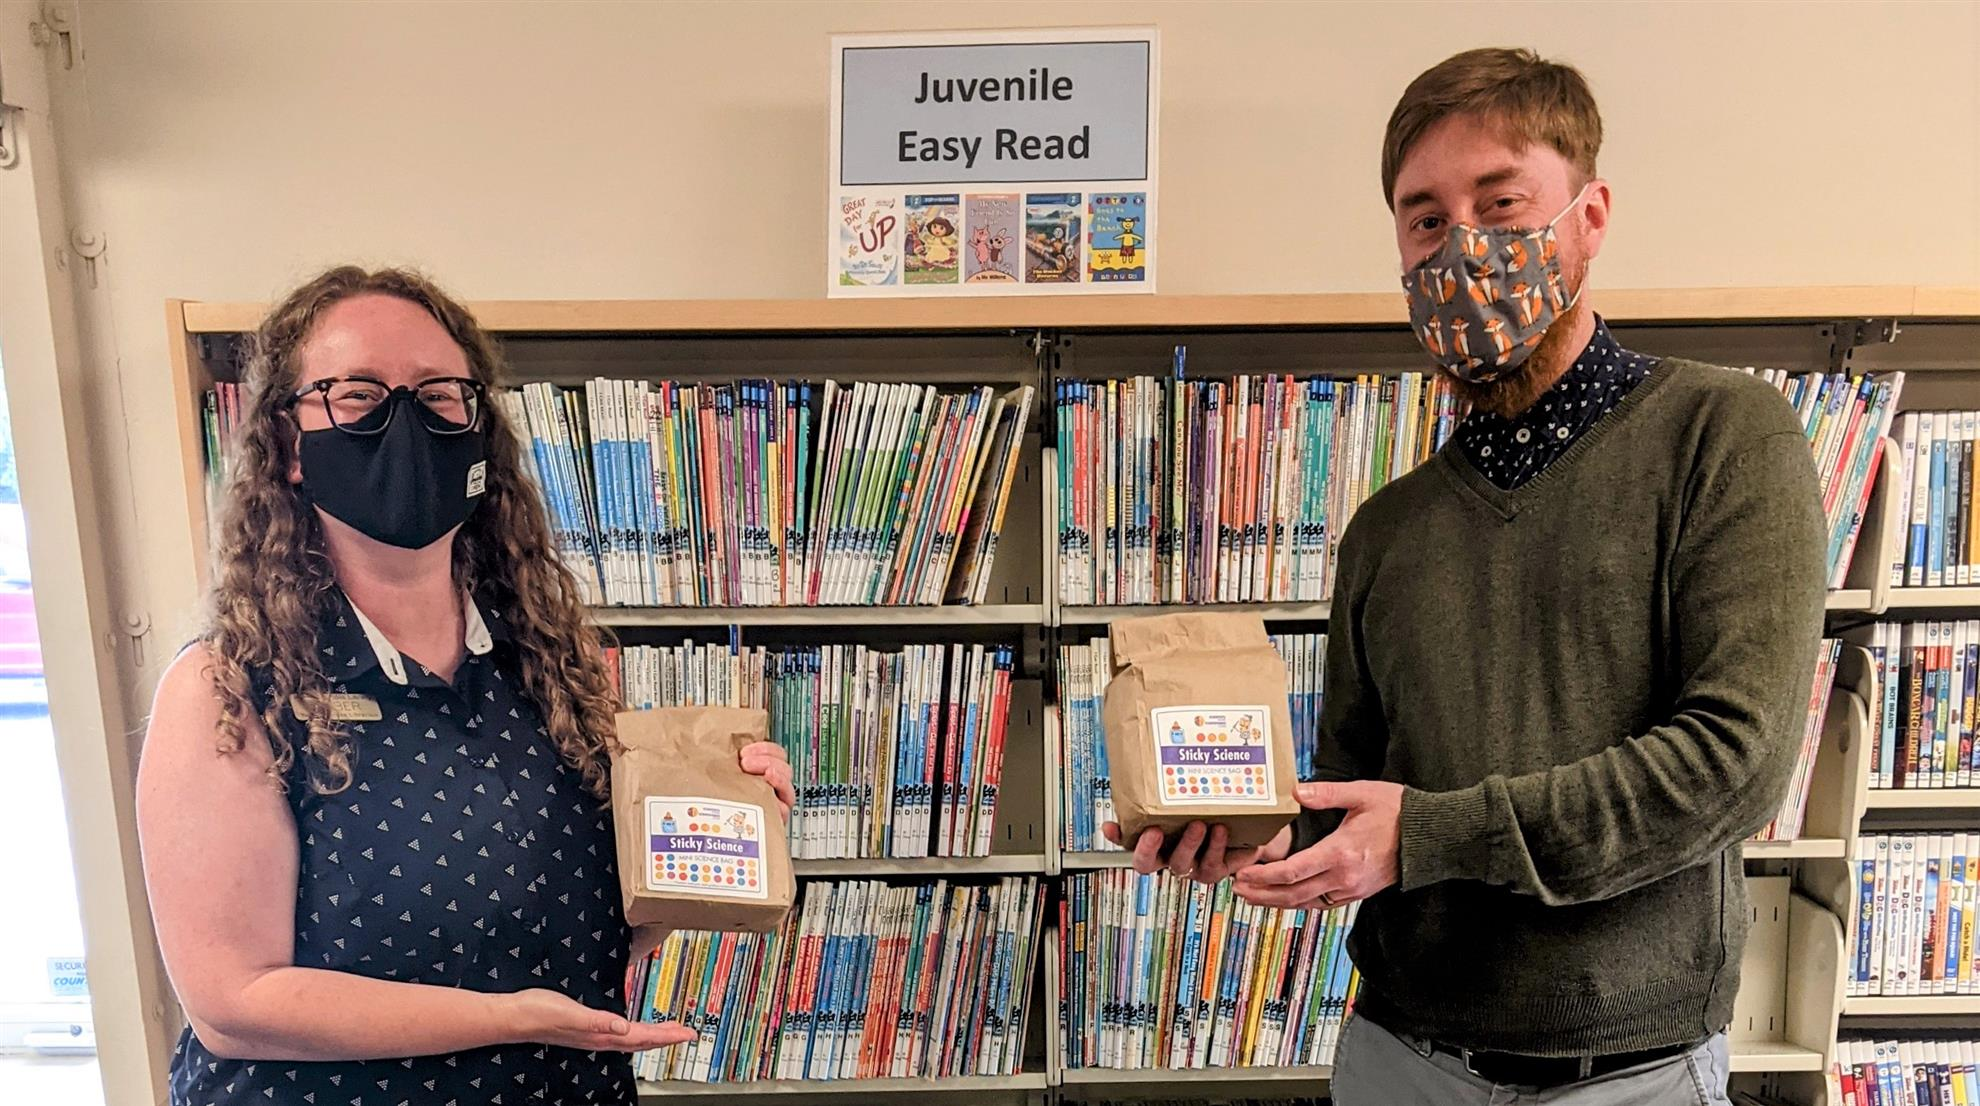 Amber and David in the library with some craft kits that read: Sticky Science